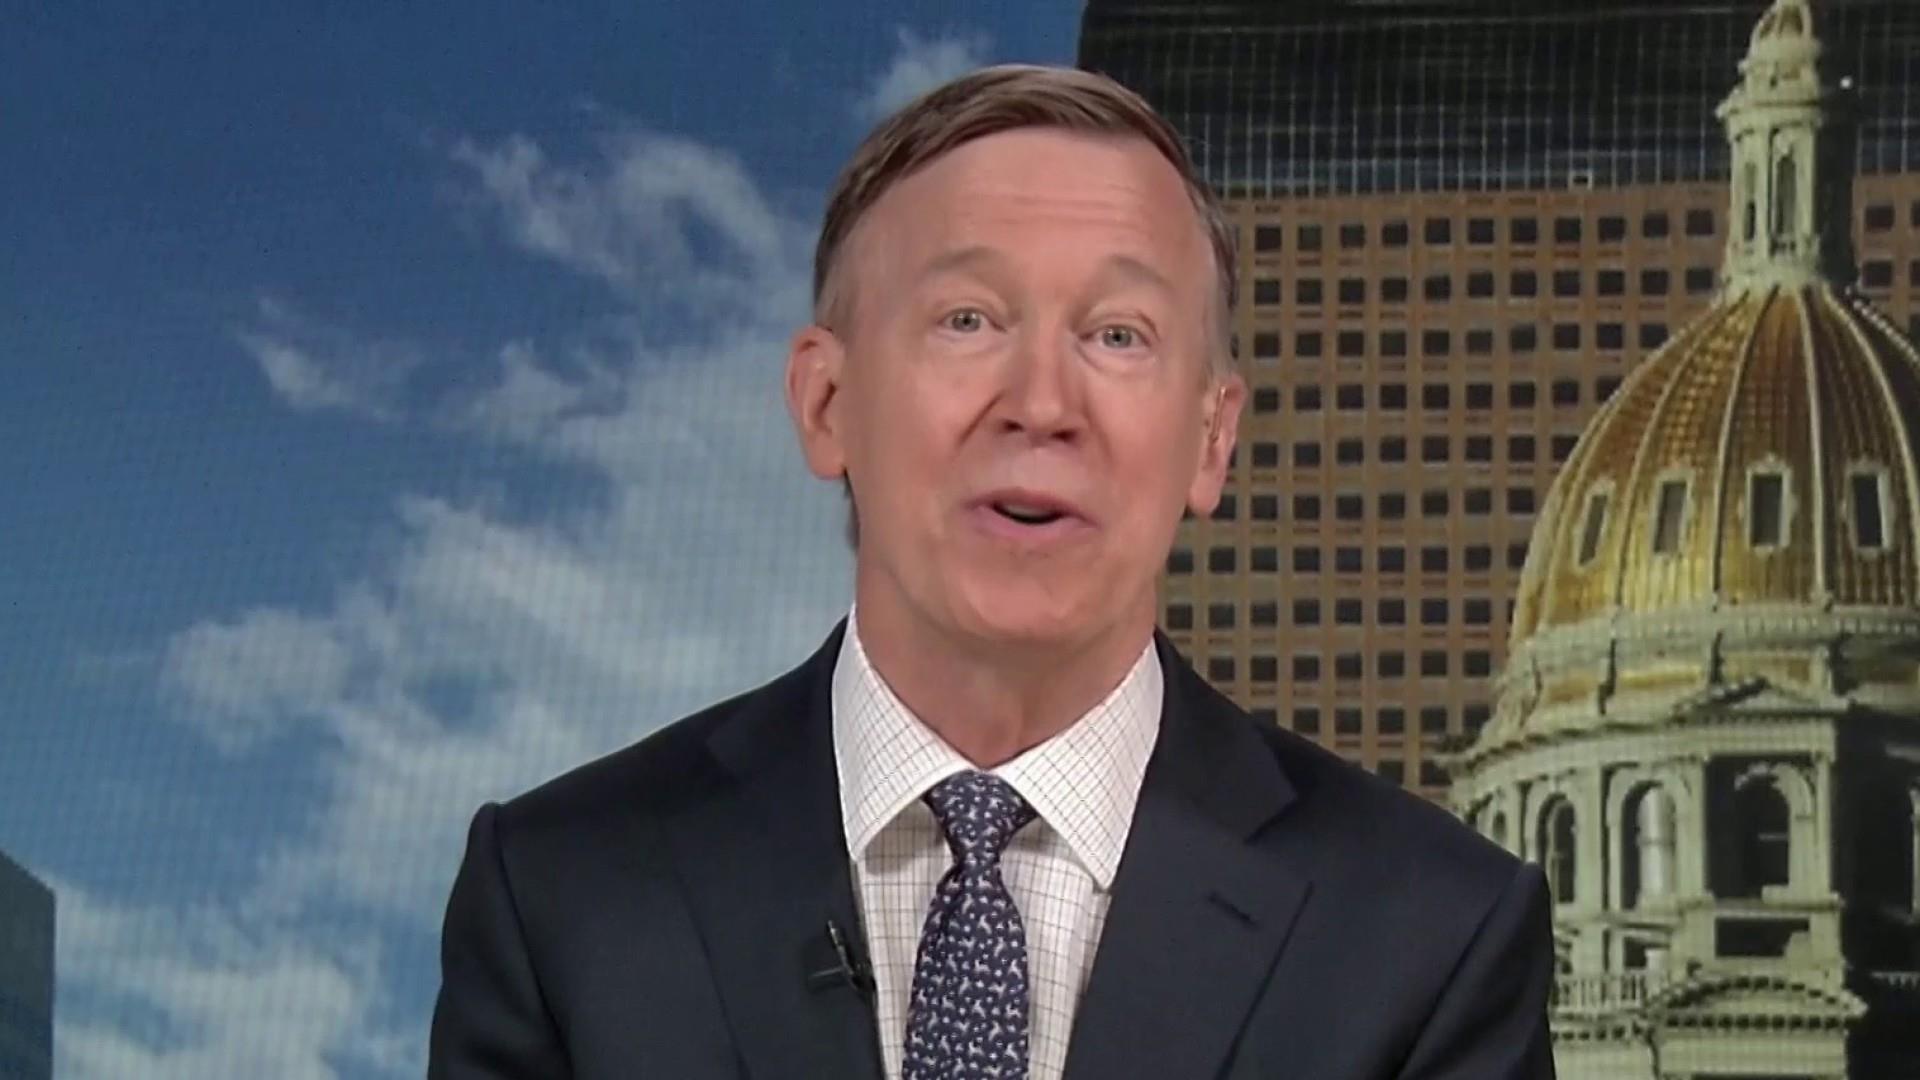 Hickenlooper: I can beat Trump and bring us together